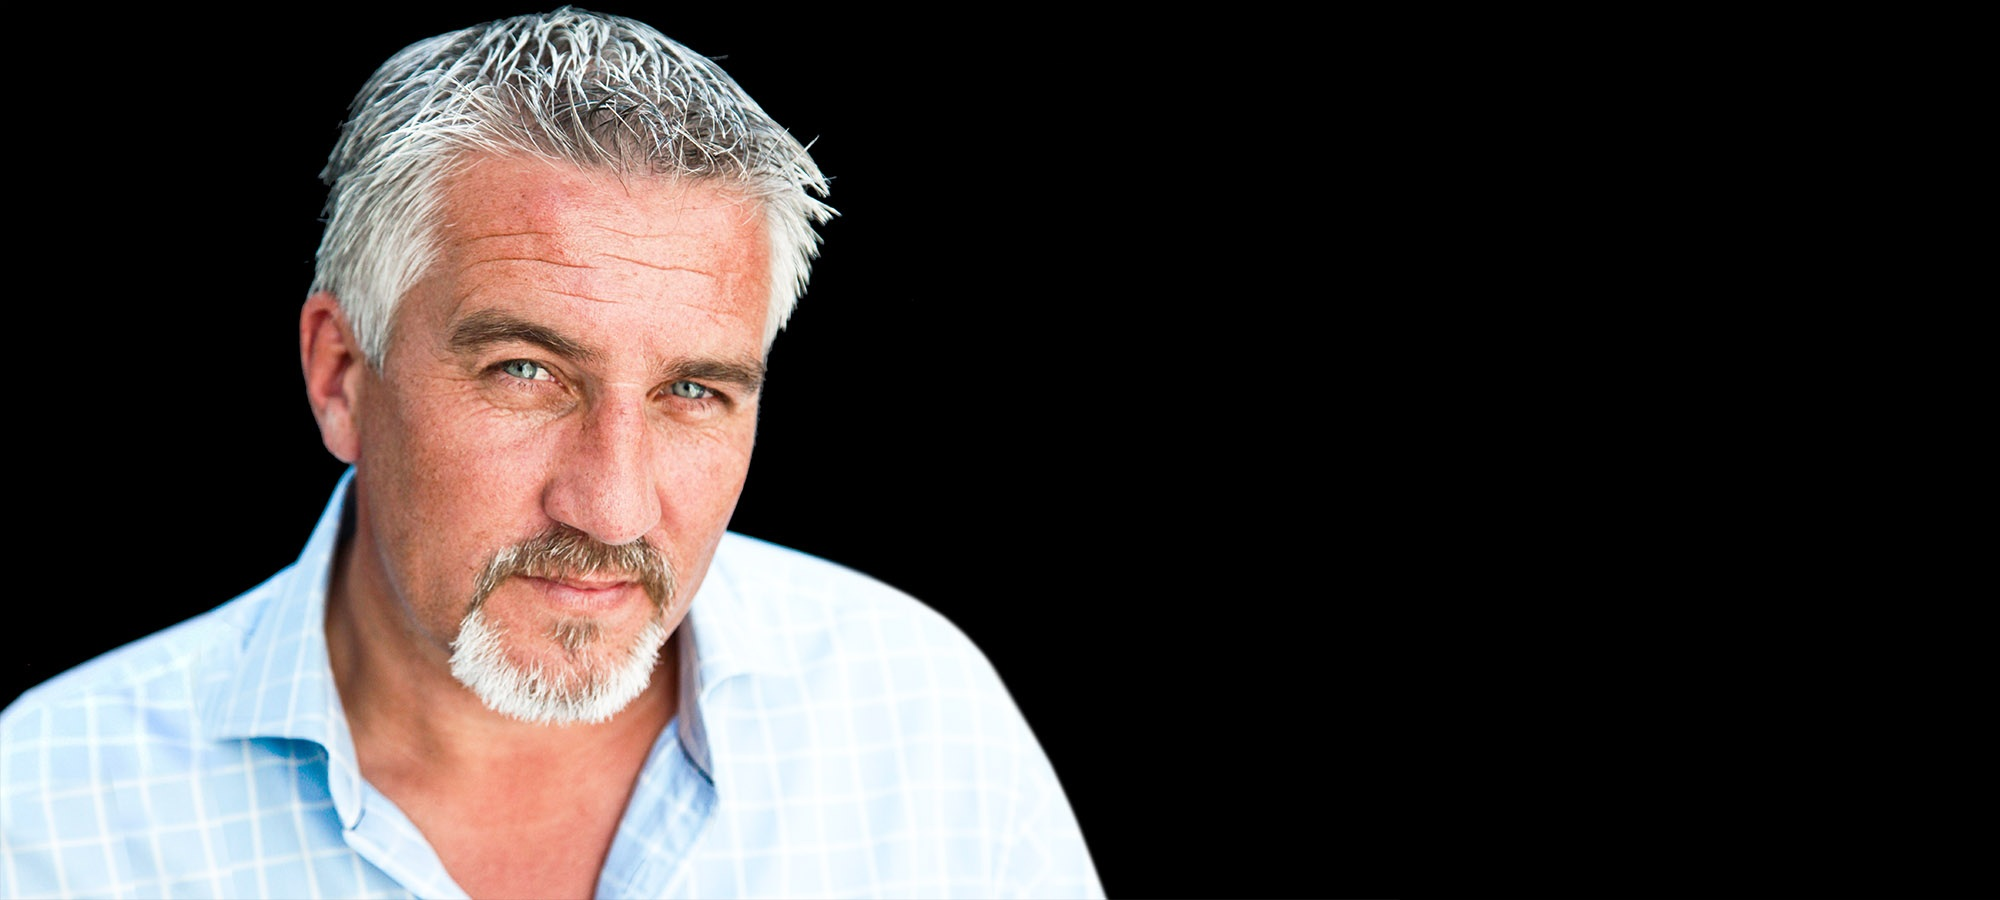 Paul-Hollywood-Banner-2000-x-900.jpg